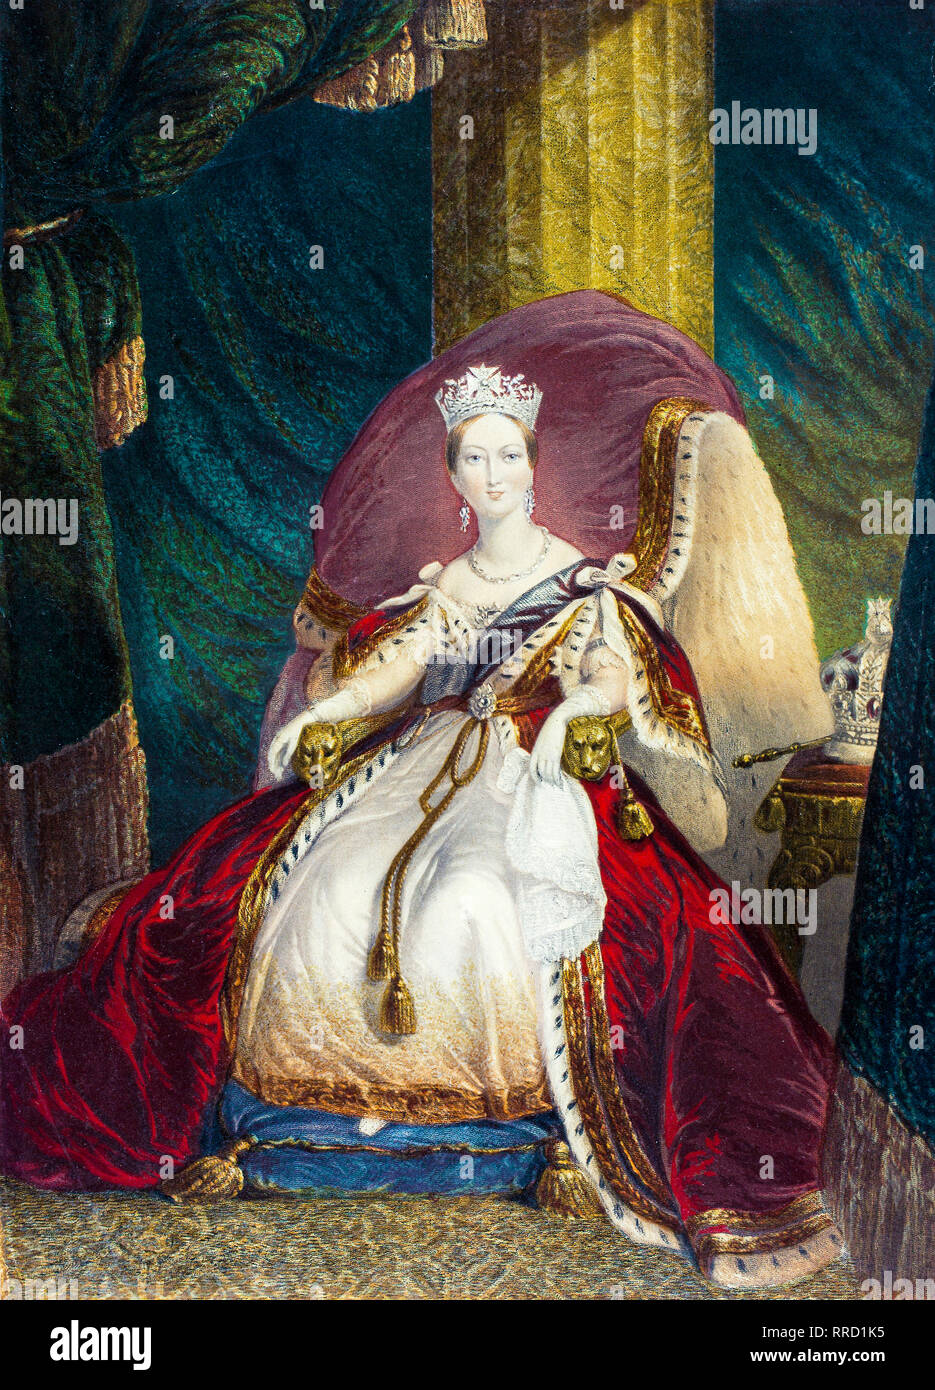 Queen Victoria, coronation portrait, George Baxter c. 1859 - Stock Image